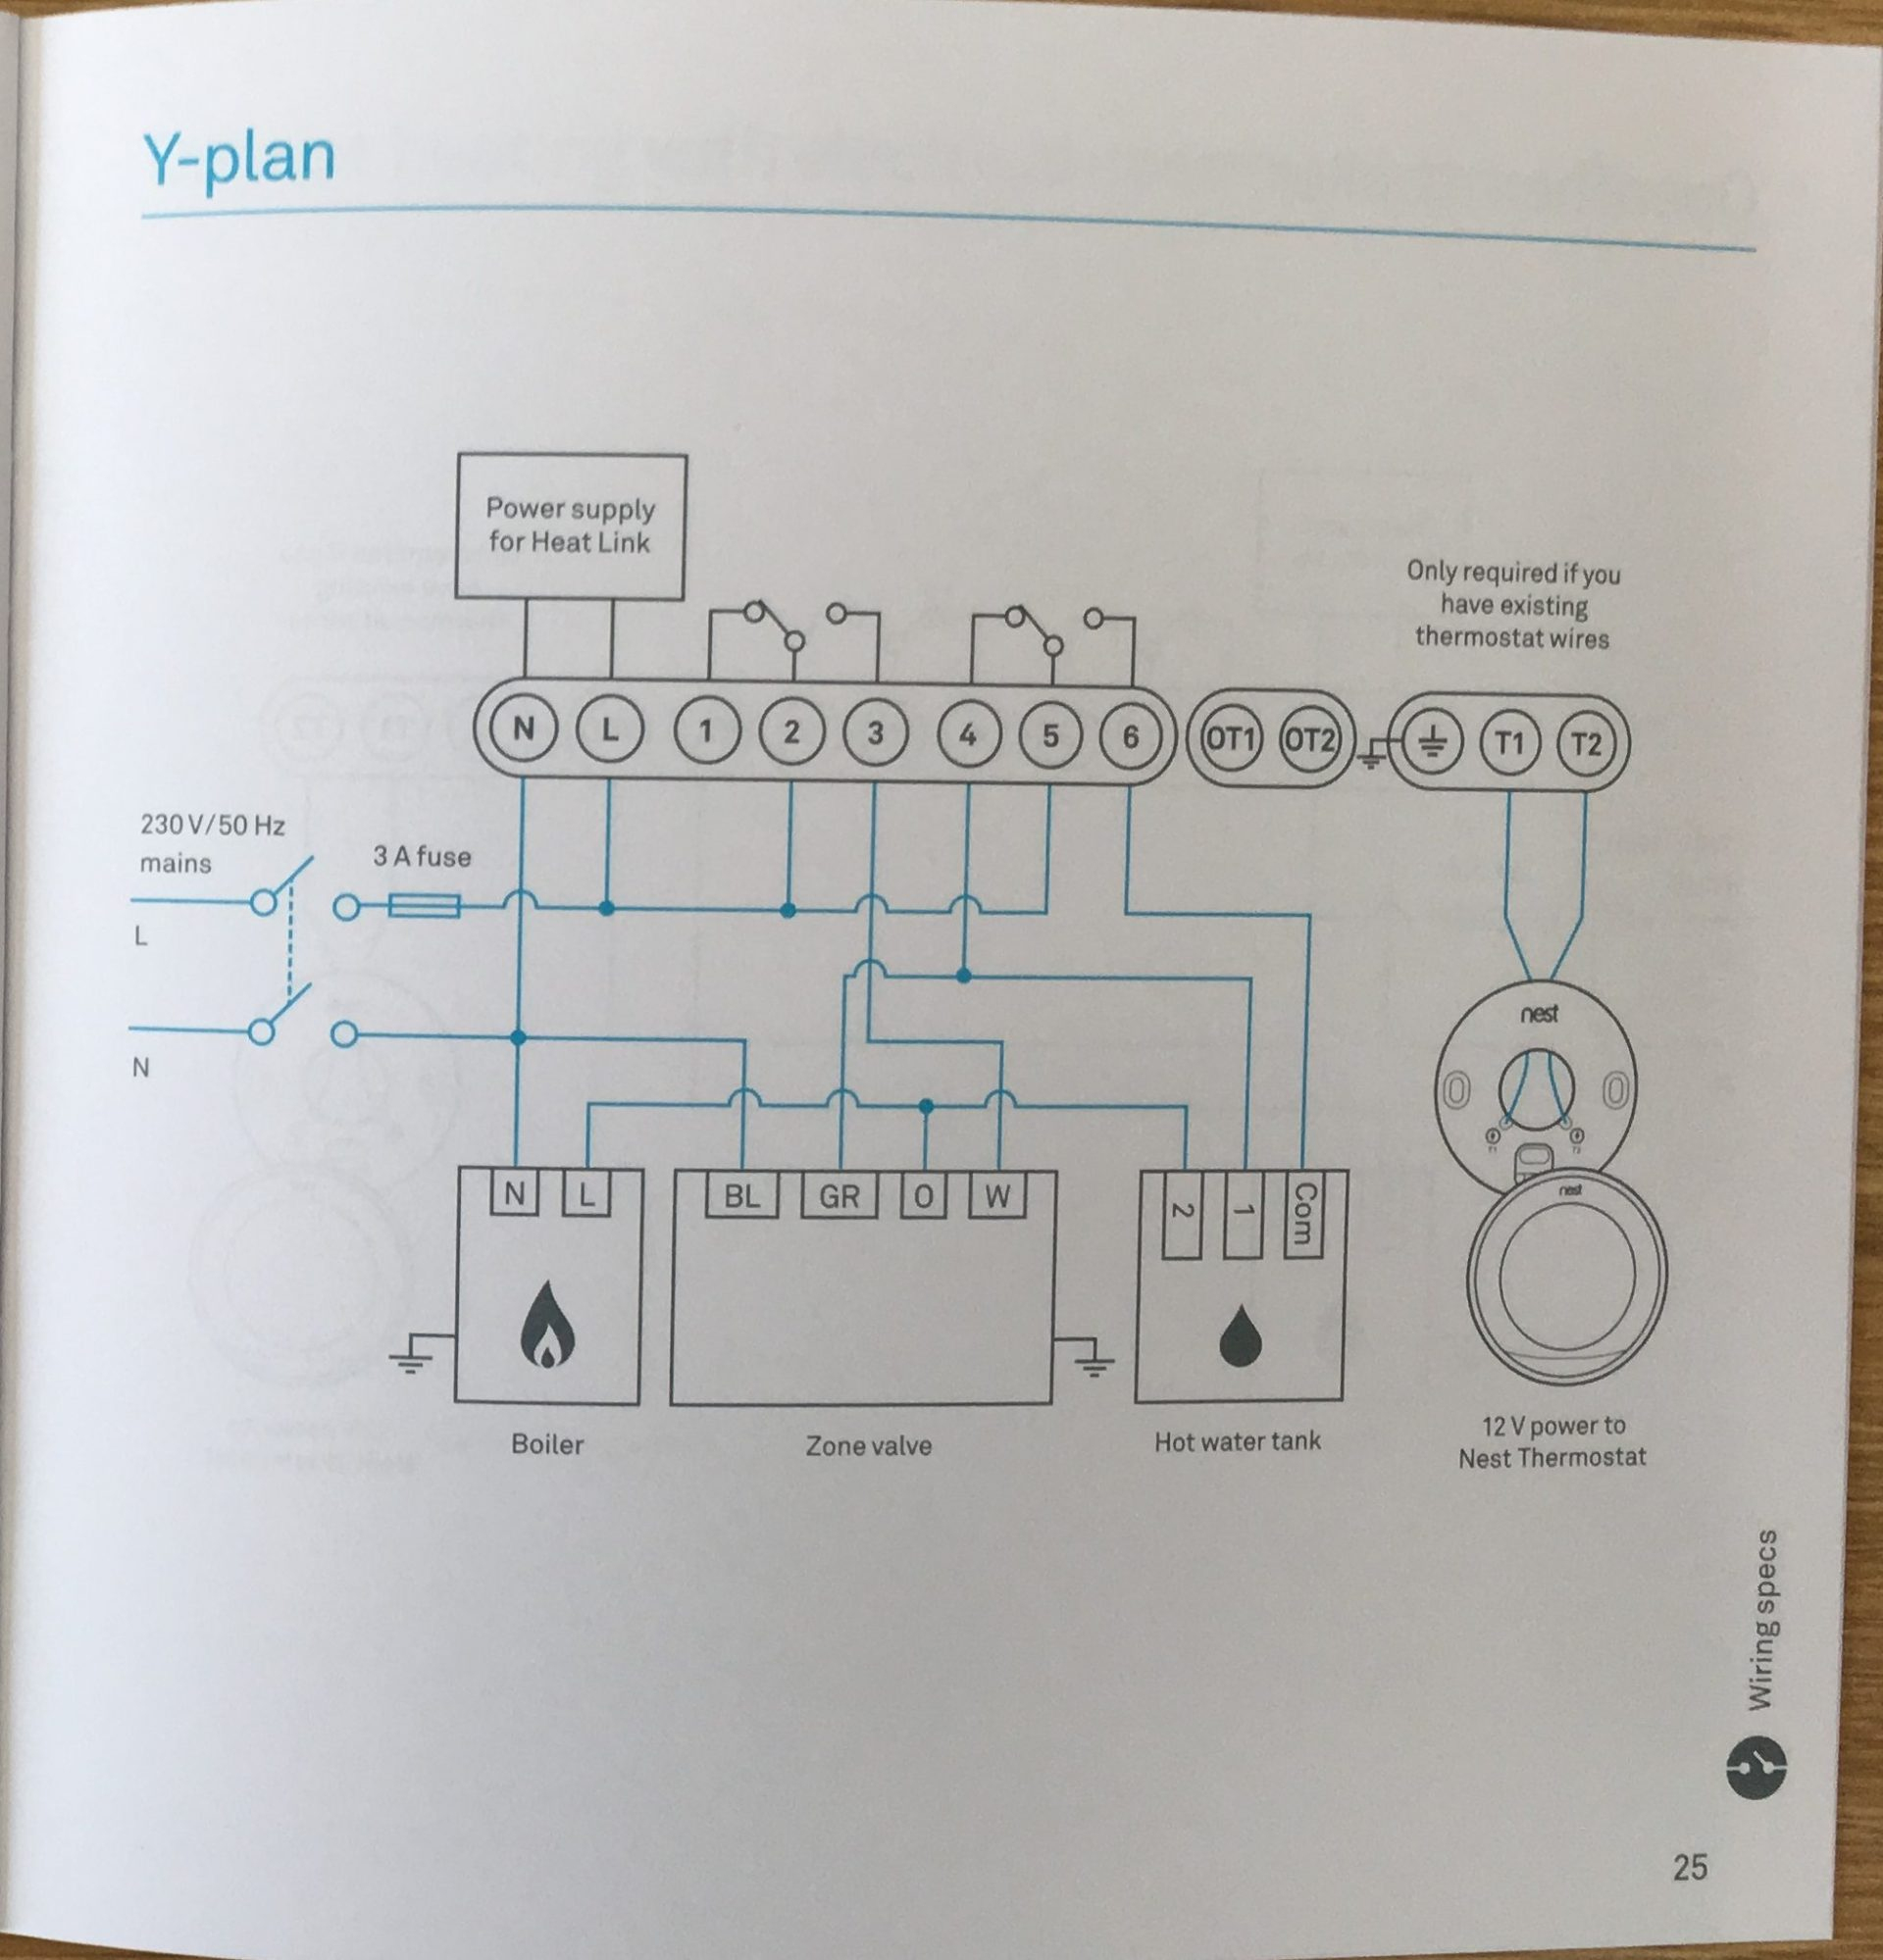 How To Install The Nest Learning Thermostat (3Rd Gen) In A Y-Plan - Nest 3Rd Gen Wiring Diagram